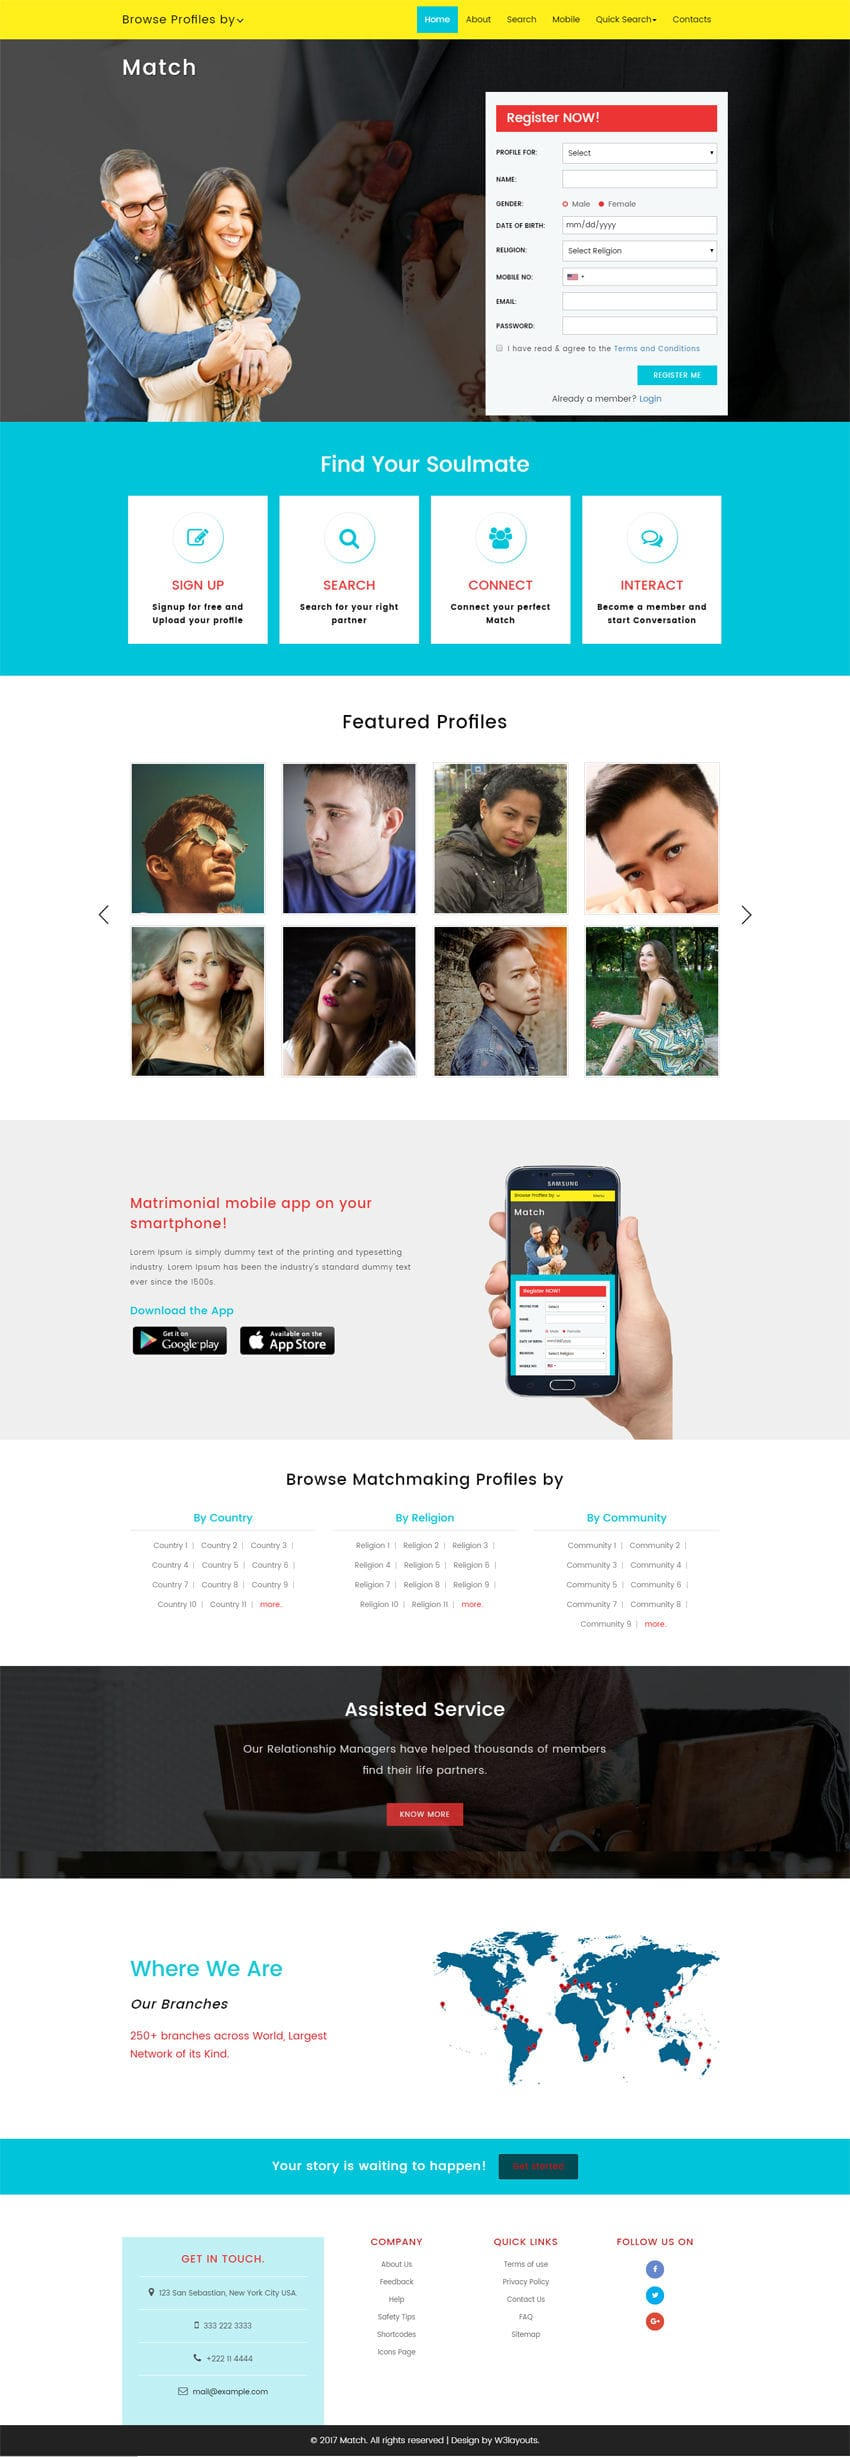 Match is a wedding category Bootstrap responsive website template. This free web template is built with HTML & CSS and best suits matrimonial websites.